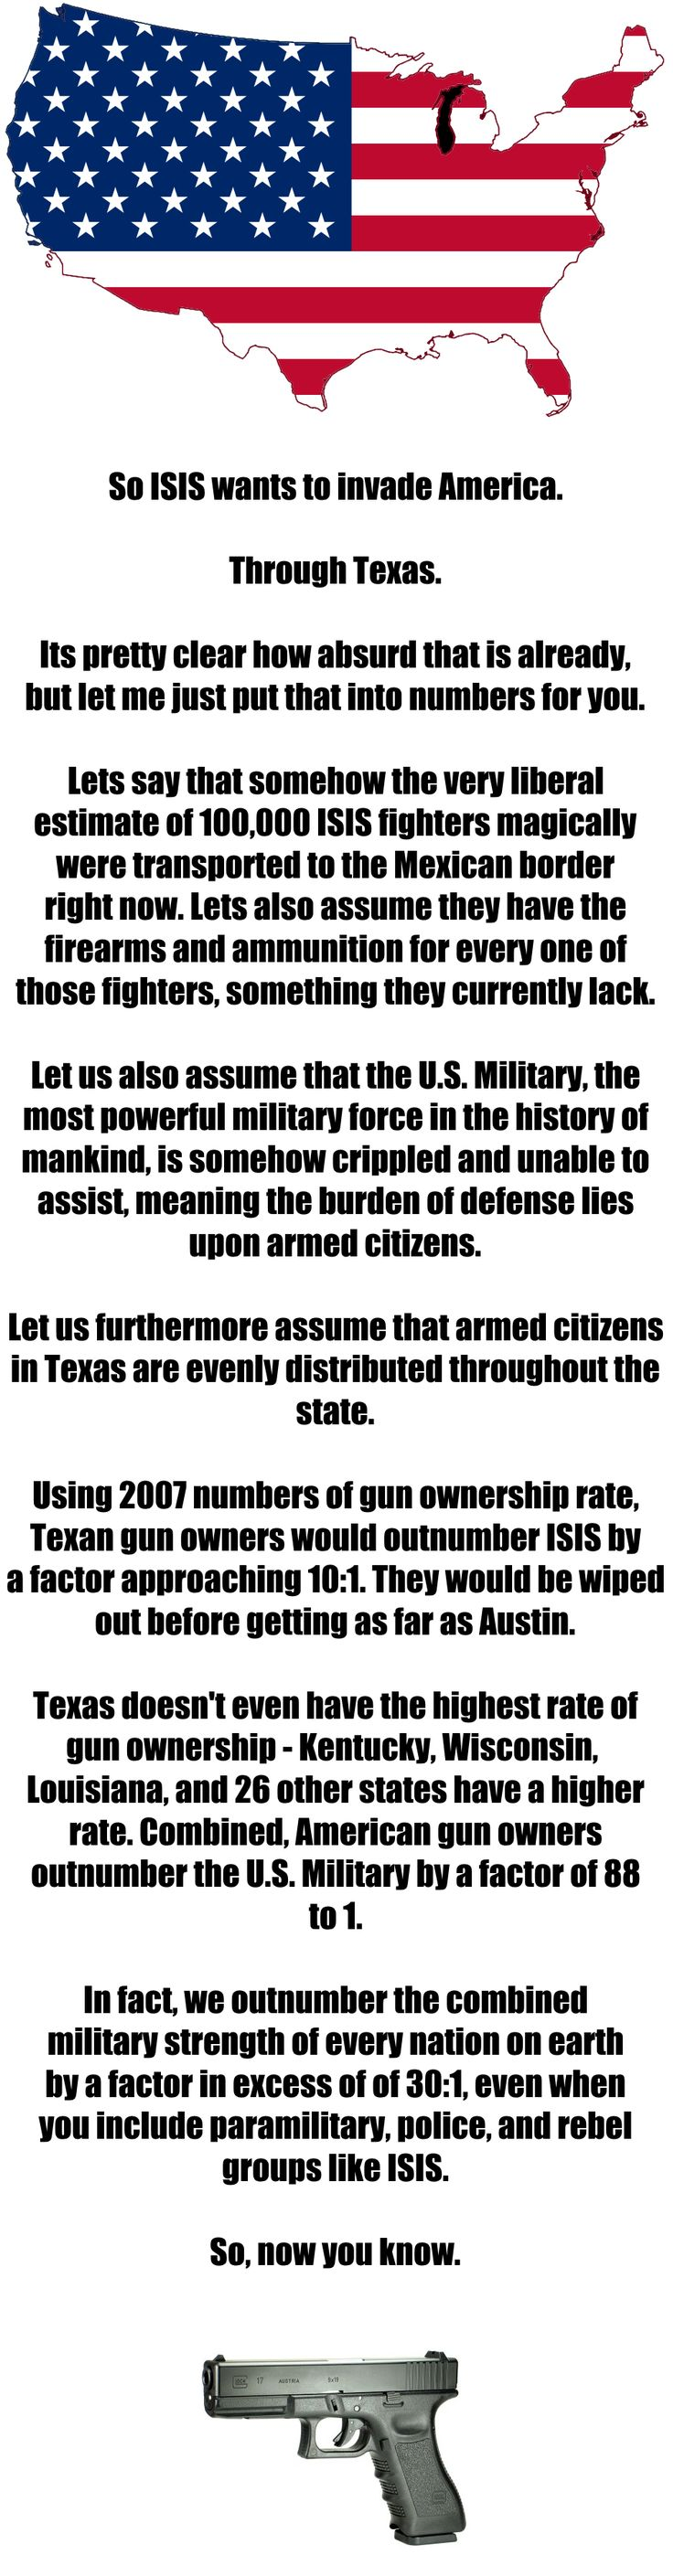 So ISIS wants to invade, do they? // tags: funny pictures - funny photos - funny images - funny pics - funny quotes - #lol #humor #funnypictures